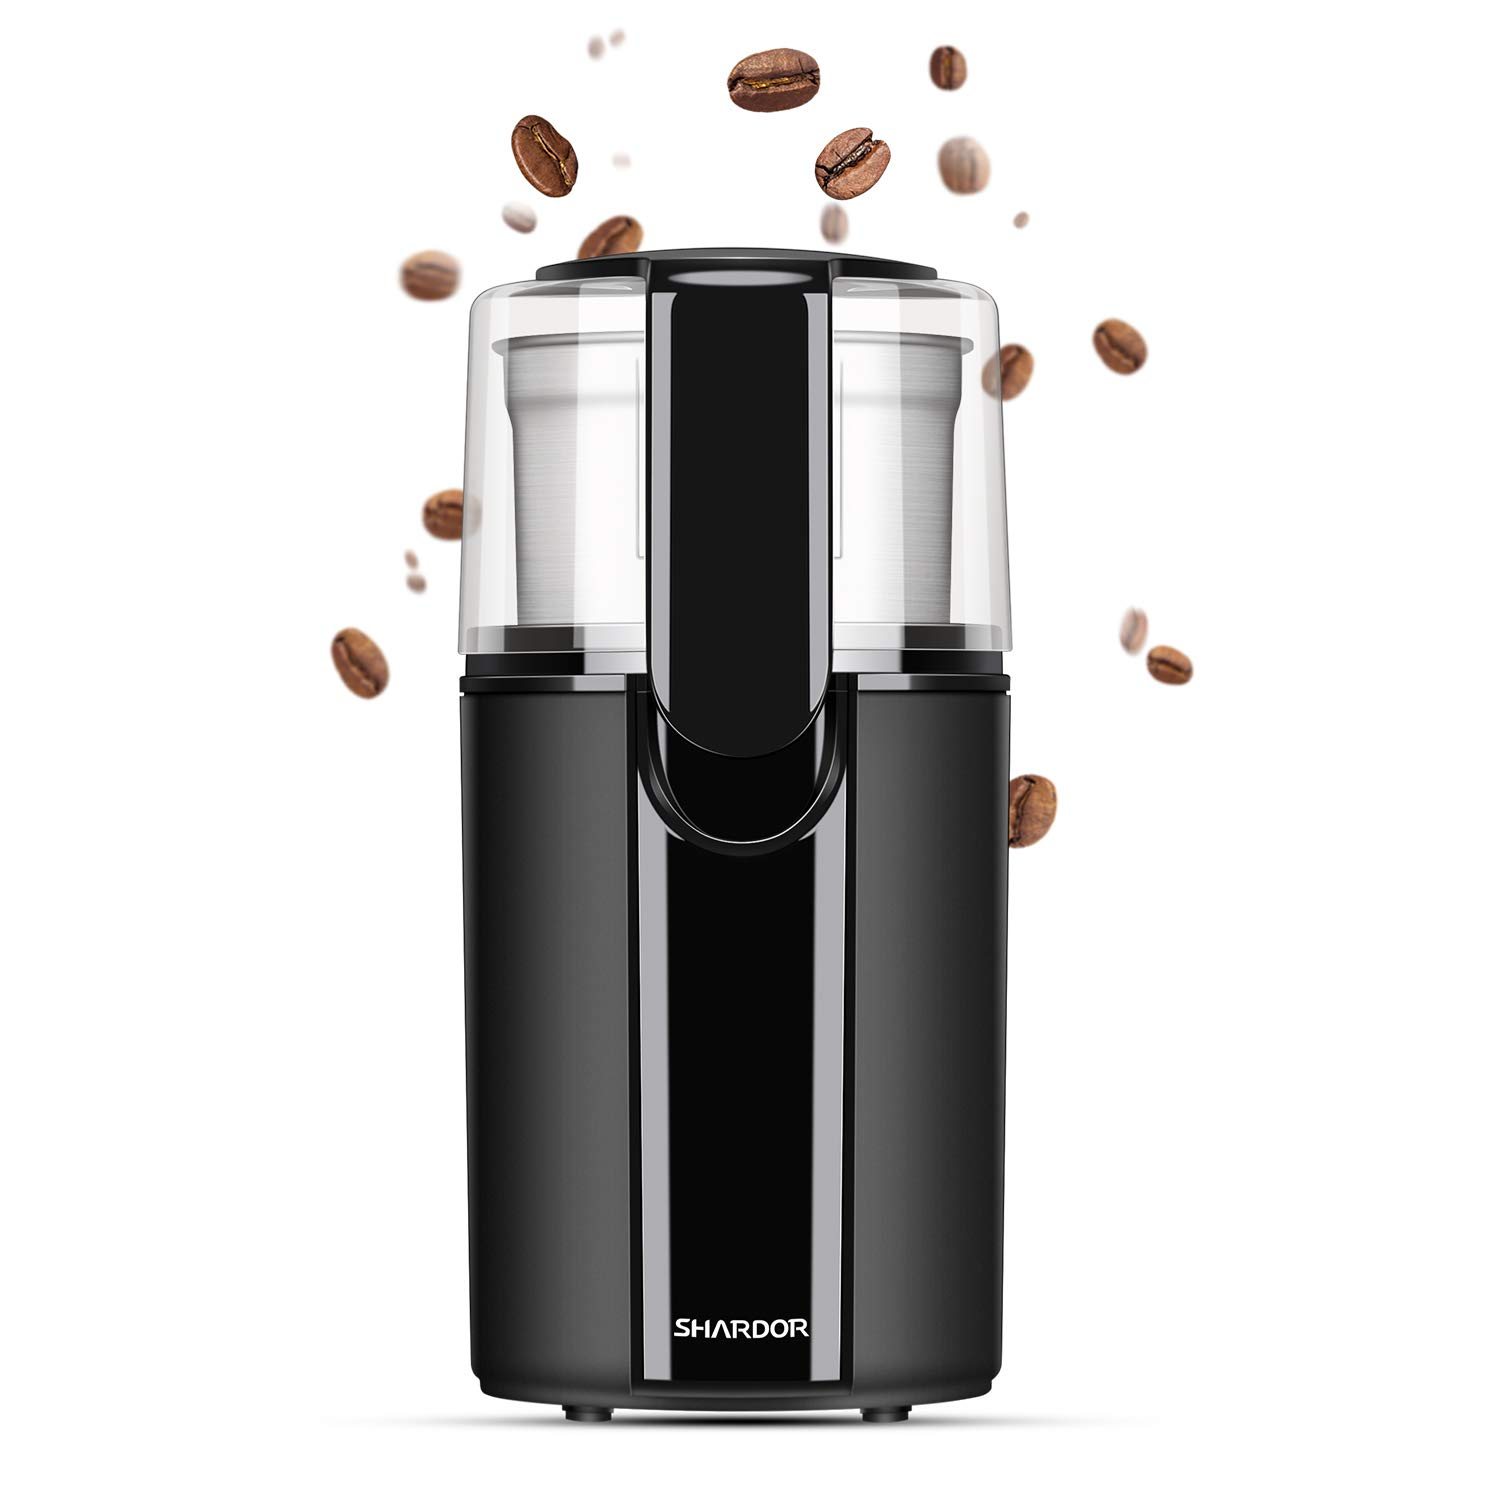 SHARDOR Electric Blade Grinder for Coffee, Grain Mill with Removable Cup, Black, CG618B1